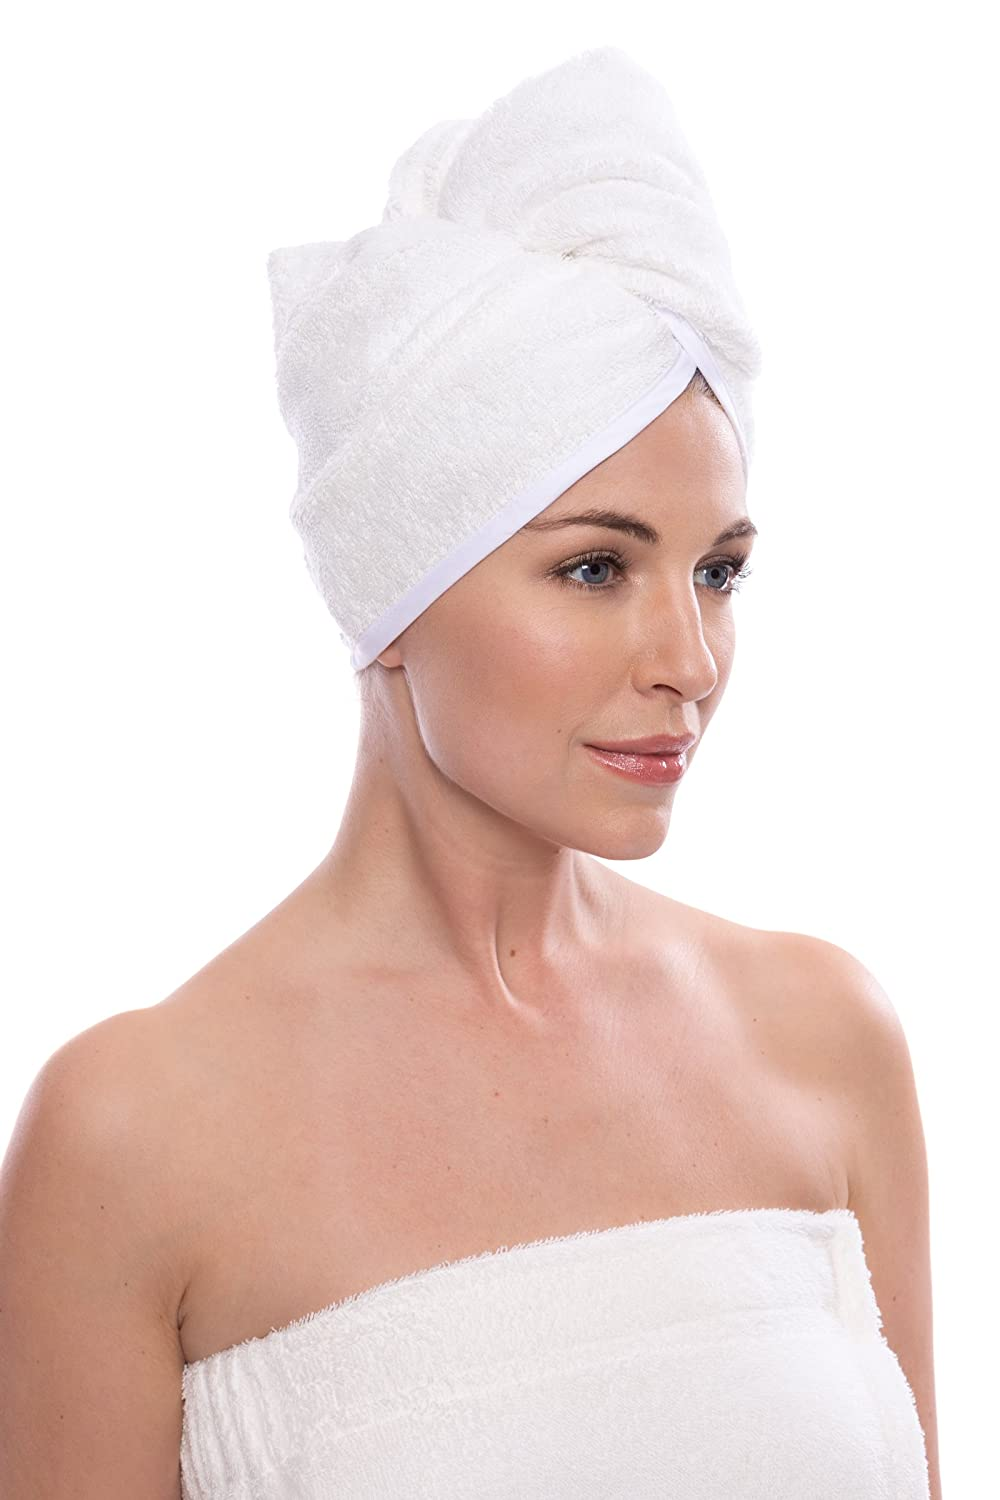 Women's Bamboo Hair Towel - Hair Drying Towel Wrap - Cotton Towel Hair Wrap AB0101-KHB-U